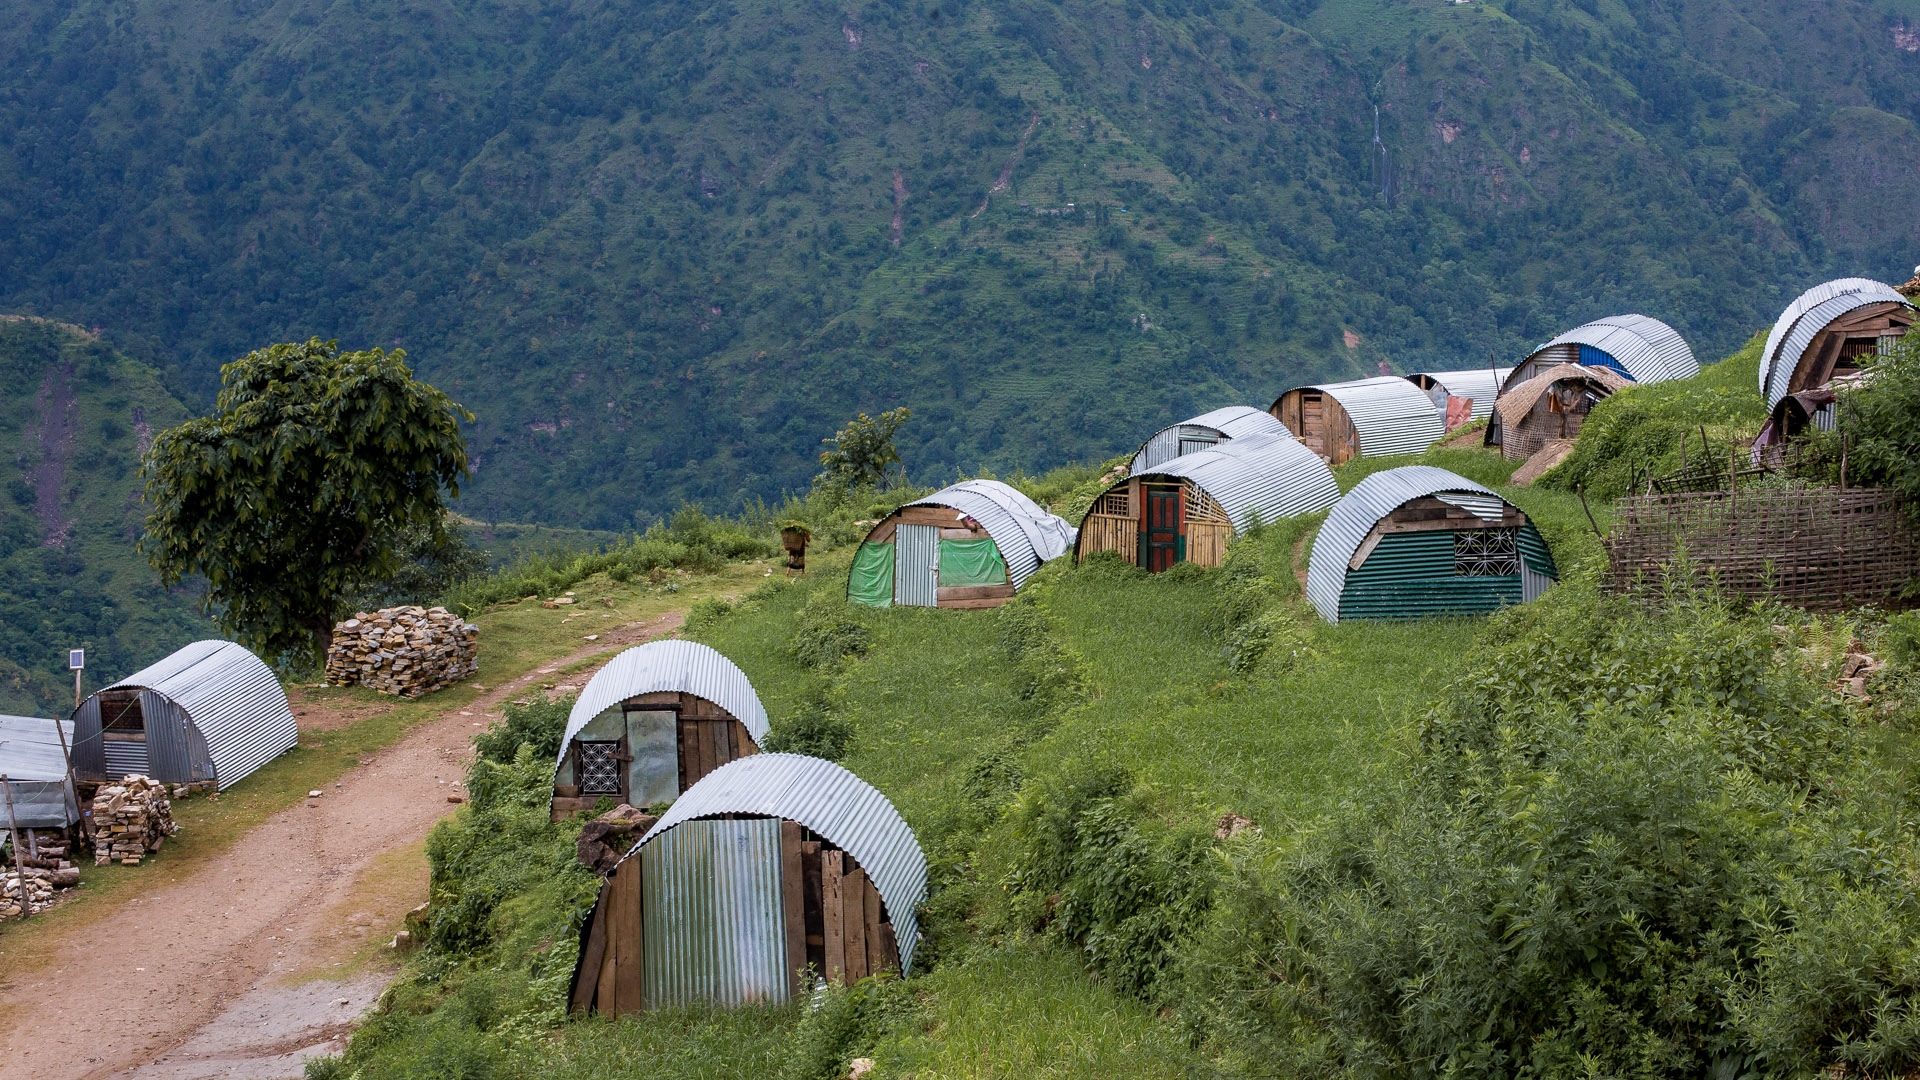 Earthquake proof temporary shelters in Mandre.